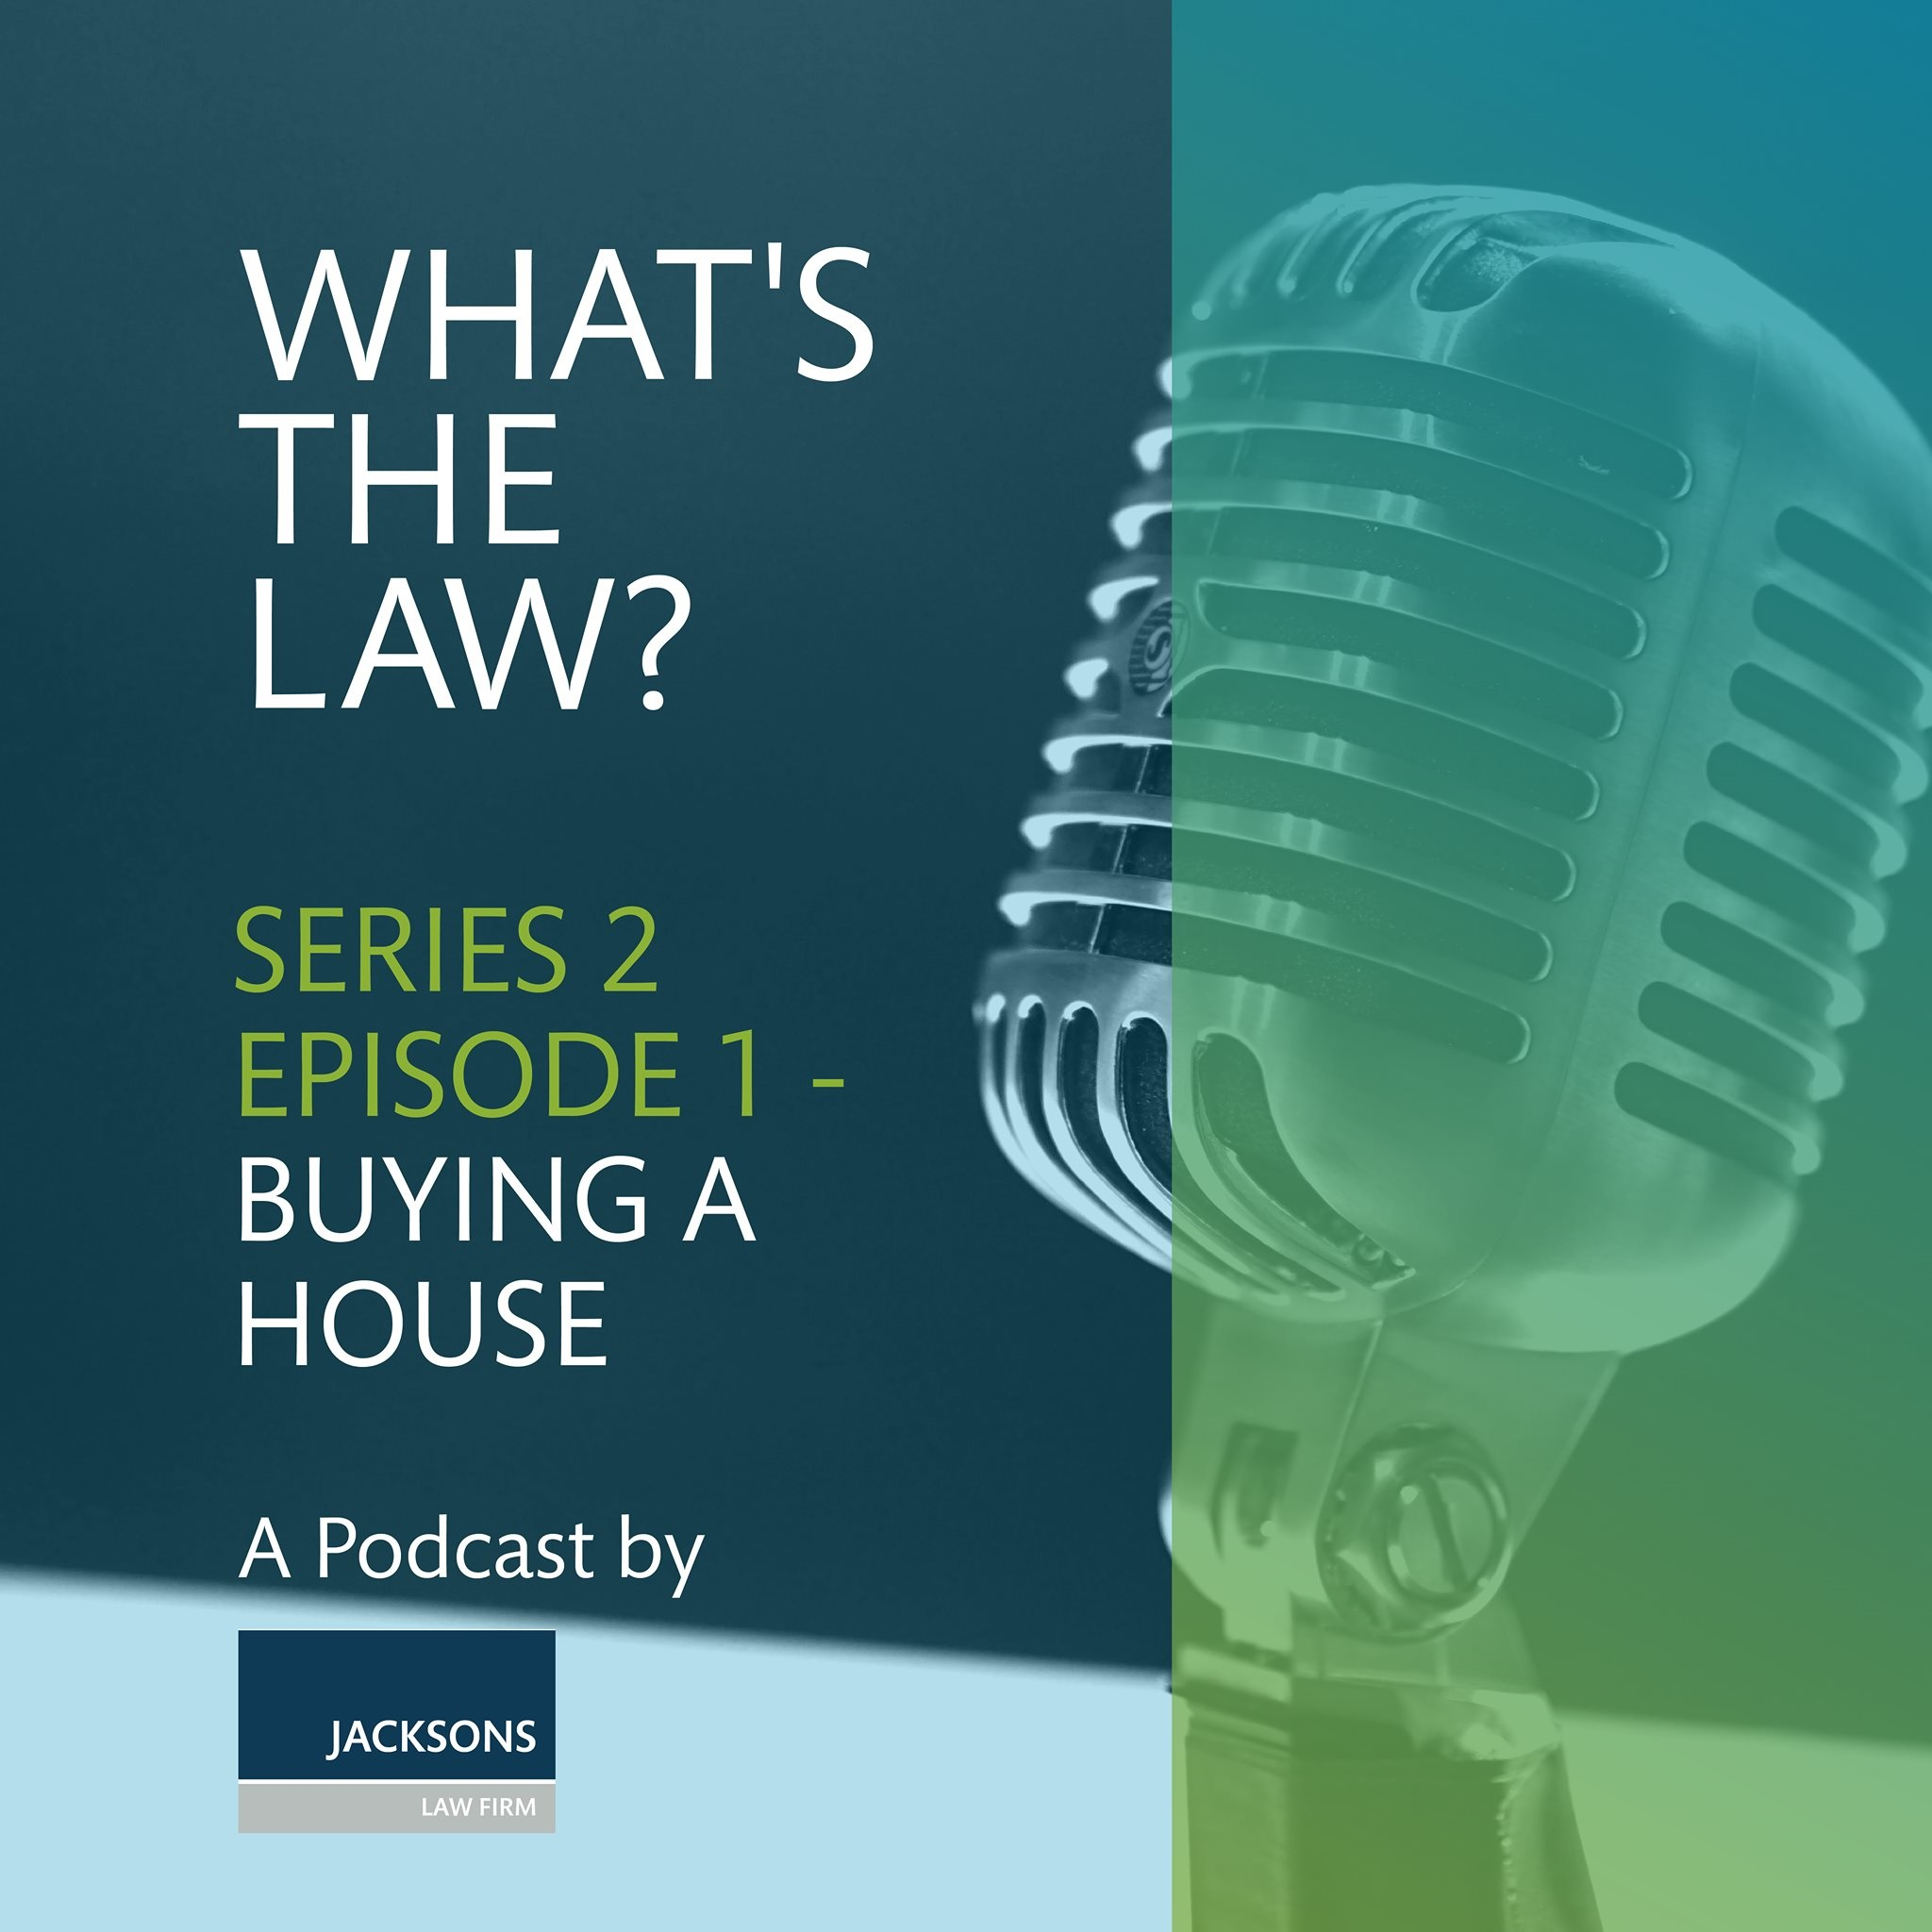 #WhatsTheLawPod – Series 2, Episode 1, Conveyancing Process